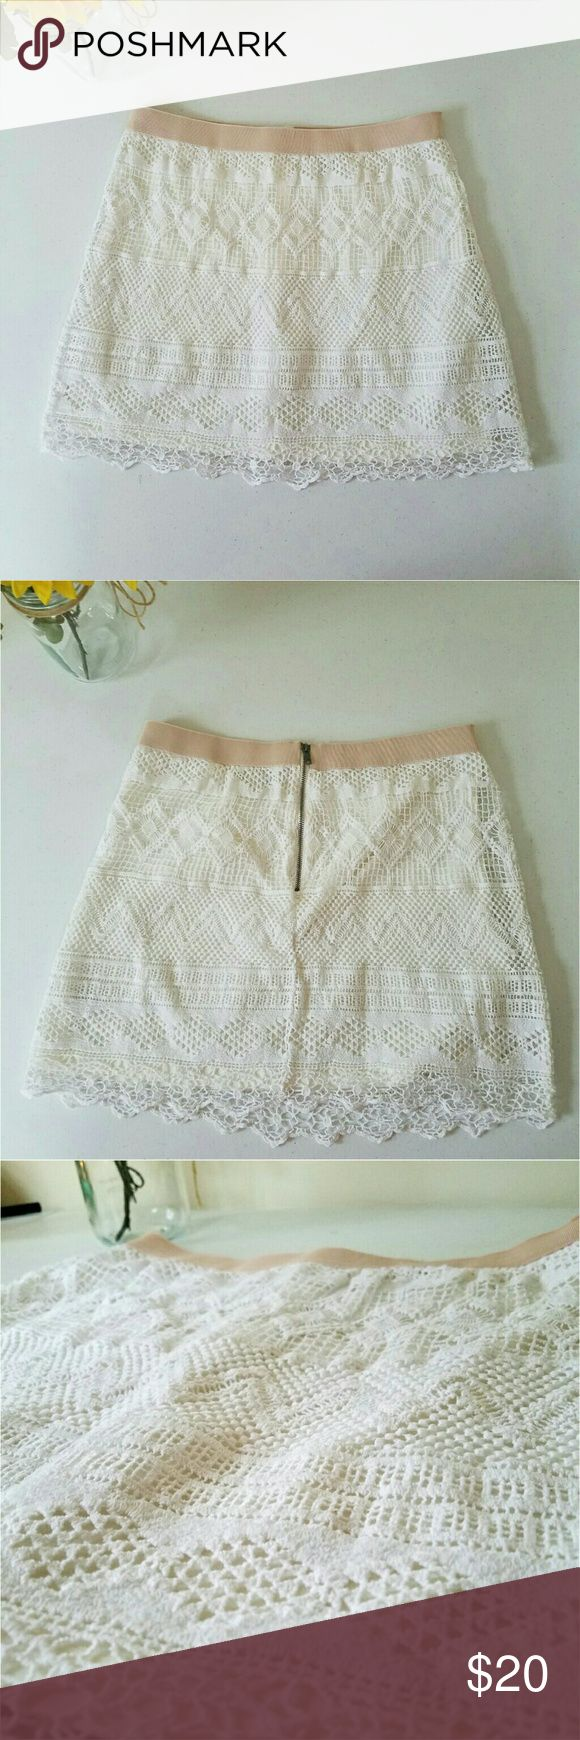 """Lace American Eagle Outfitters Skirt Gently worn. White lace with a cream lining and band around Waist. Material has stretch. No rips in lace. Zipper in back. Above the knee.   Measurements  Size 6 = small Length 16""""  Waist 27.5"""" Hip 37""""  Always willing to negotiate. American Eagle Outfitters Skirts"""